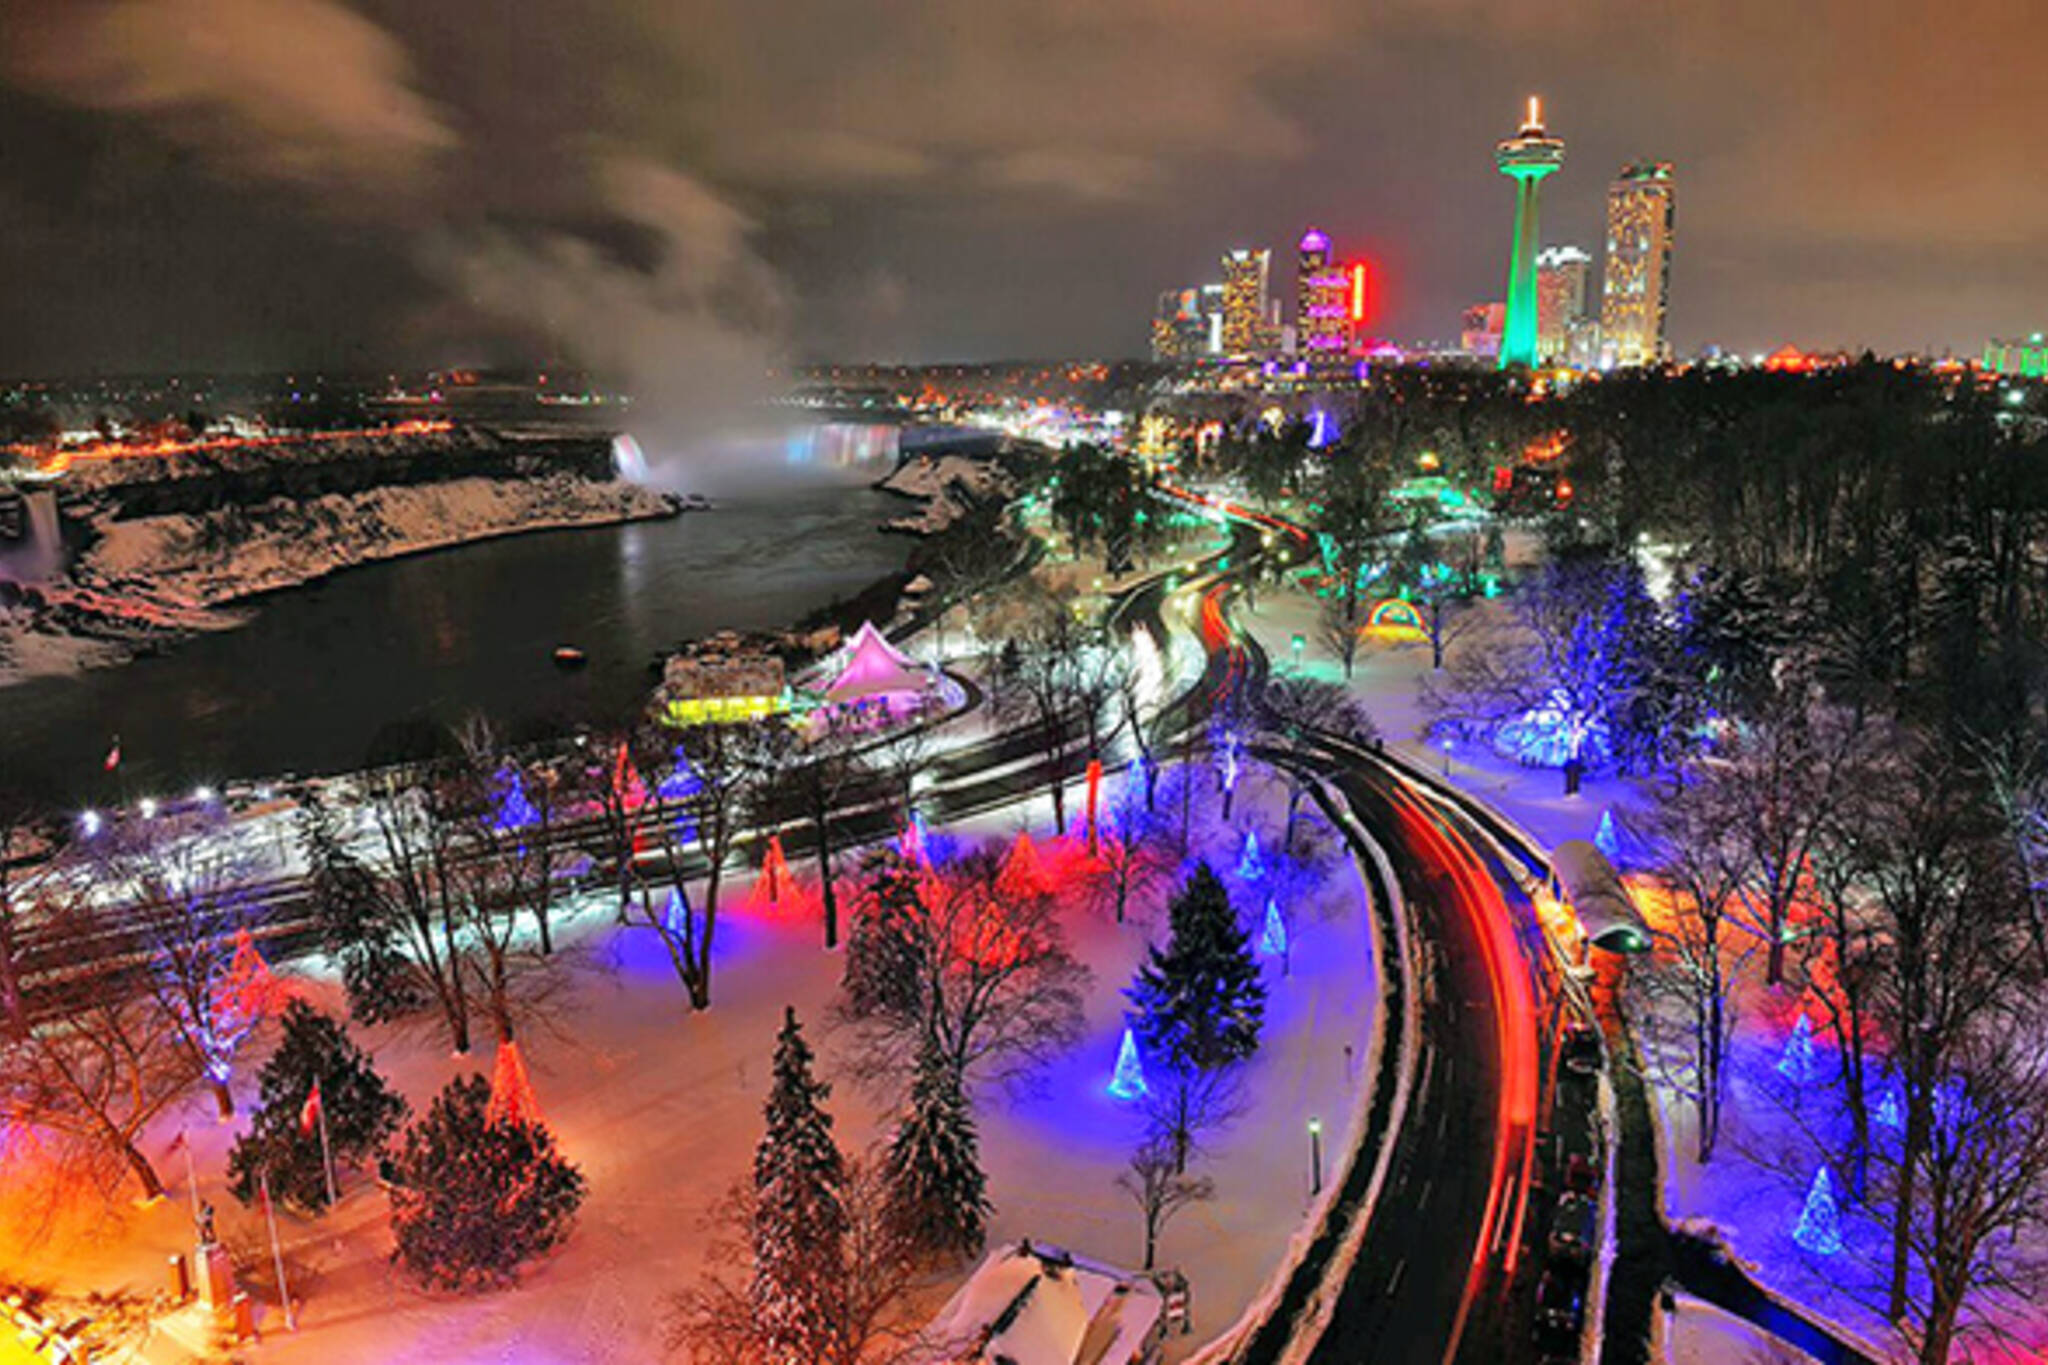 Epic holiday lights festival happening near Toronto